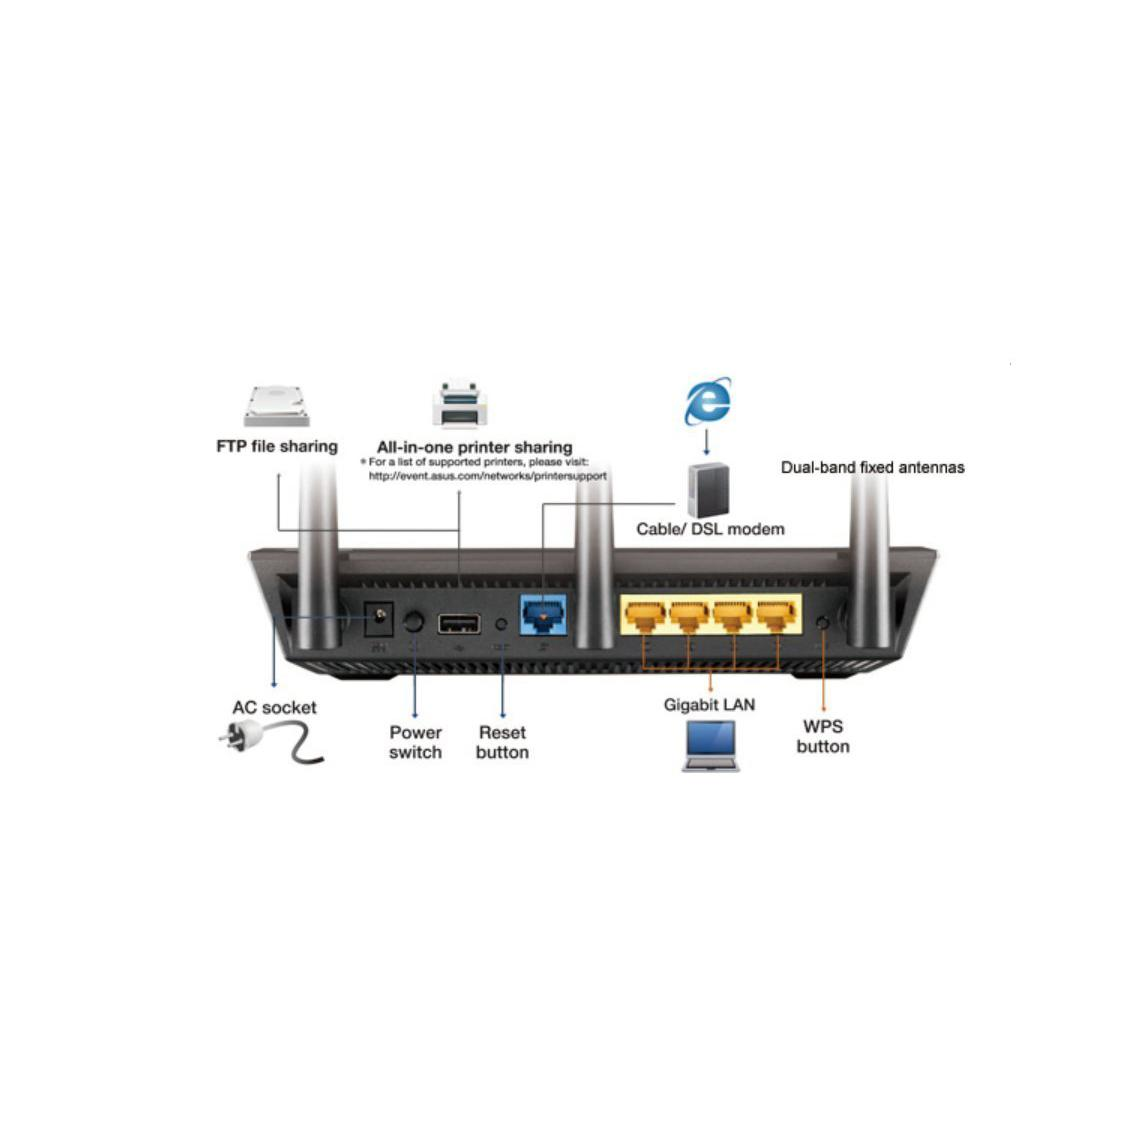 Asus Rt Ac66u B1 Dual Band 3 X 3 Ac Gigabit Wifi